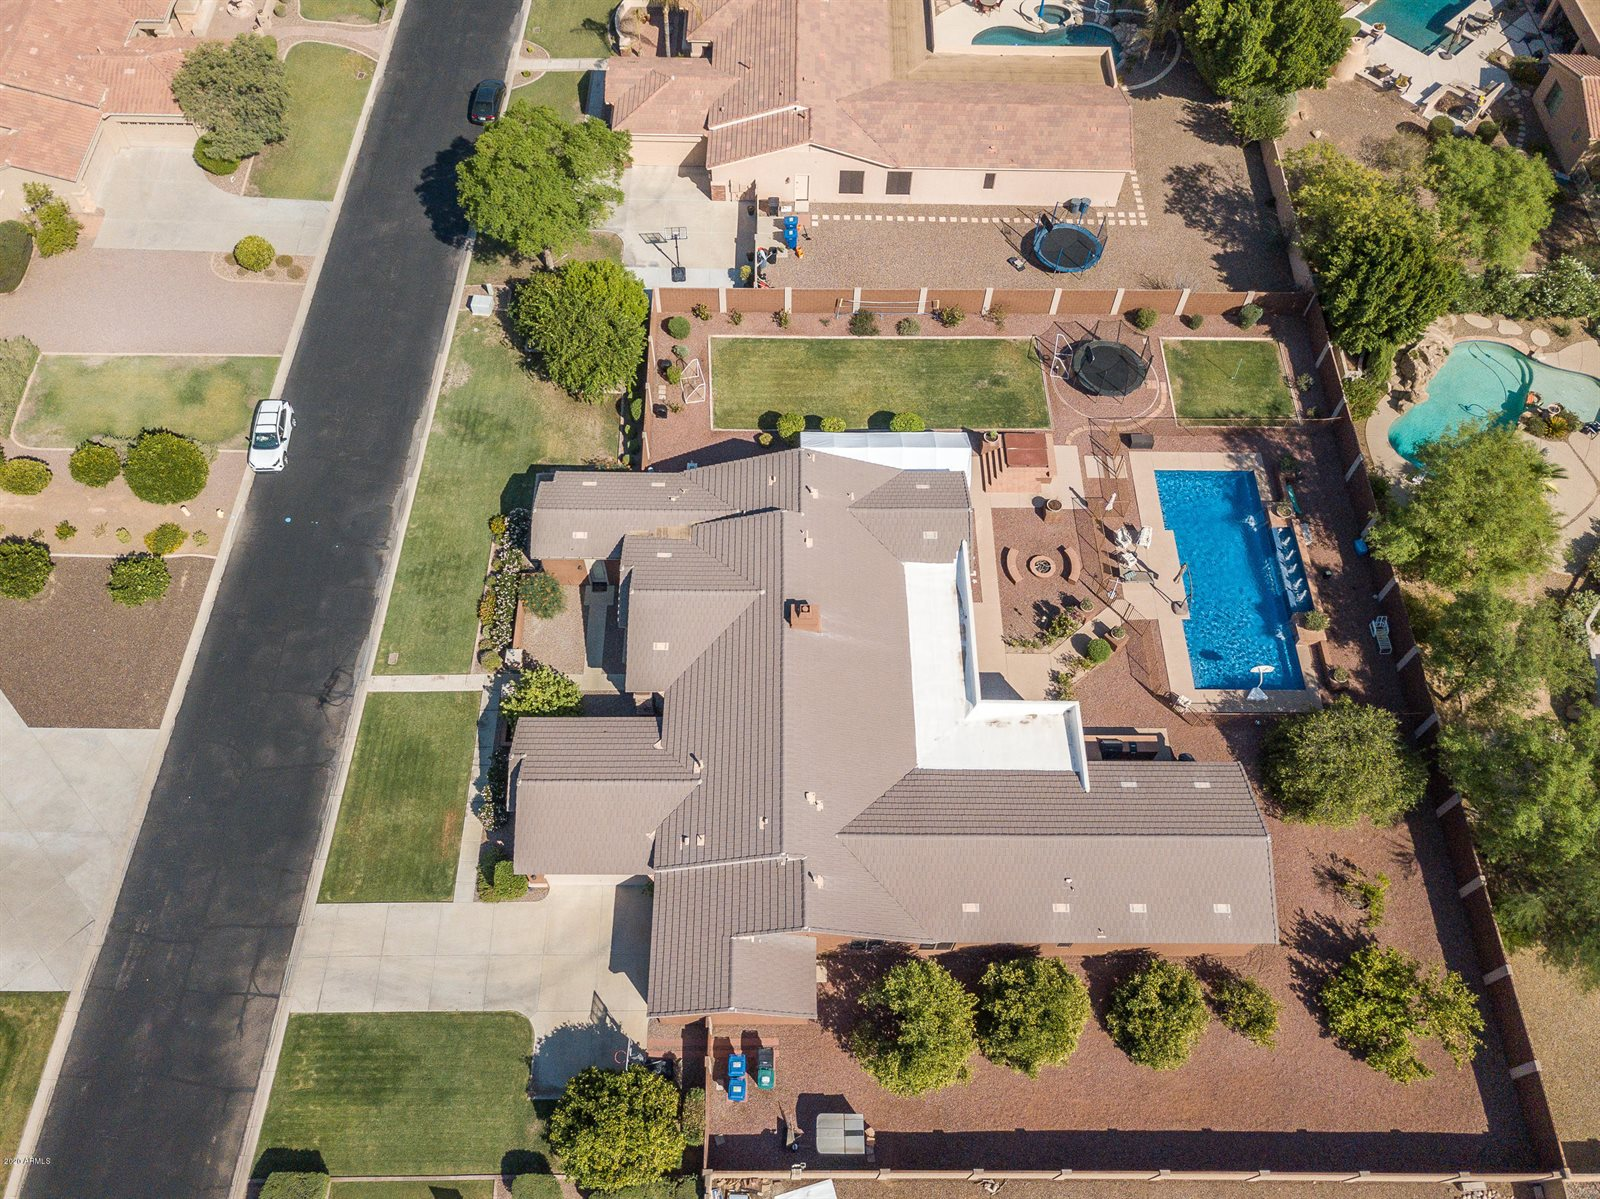 3527 East Mallory Circle, Mesa, AZ 85213